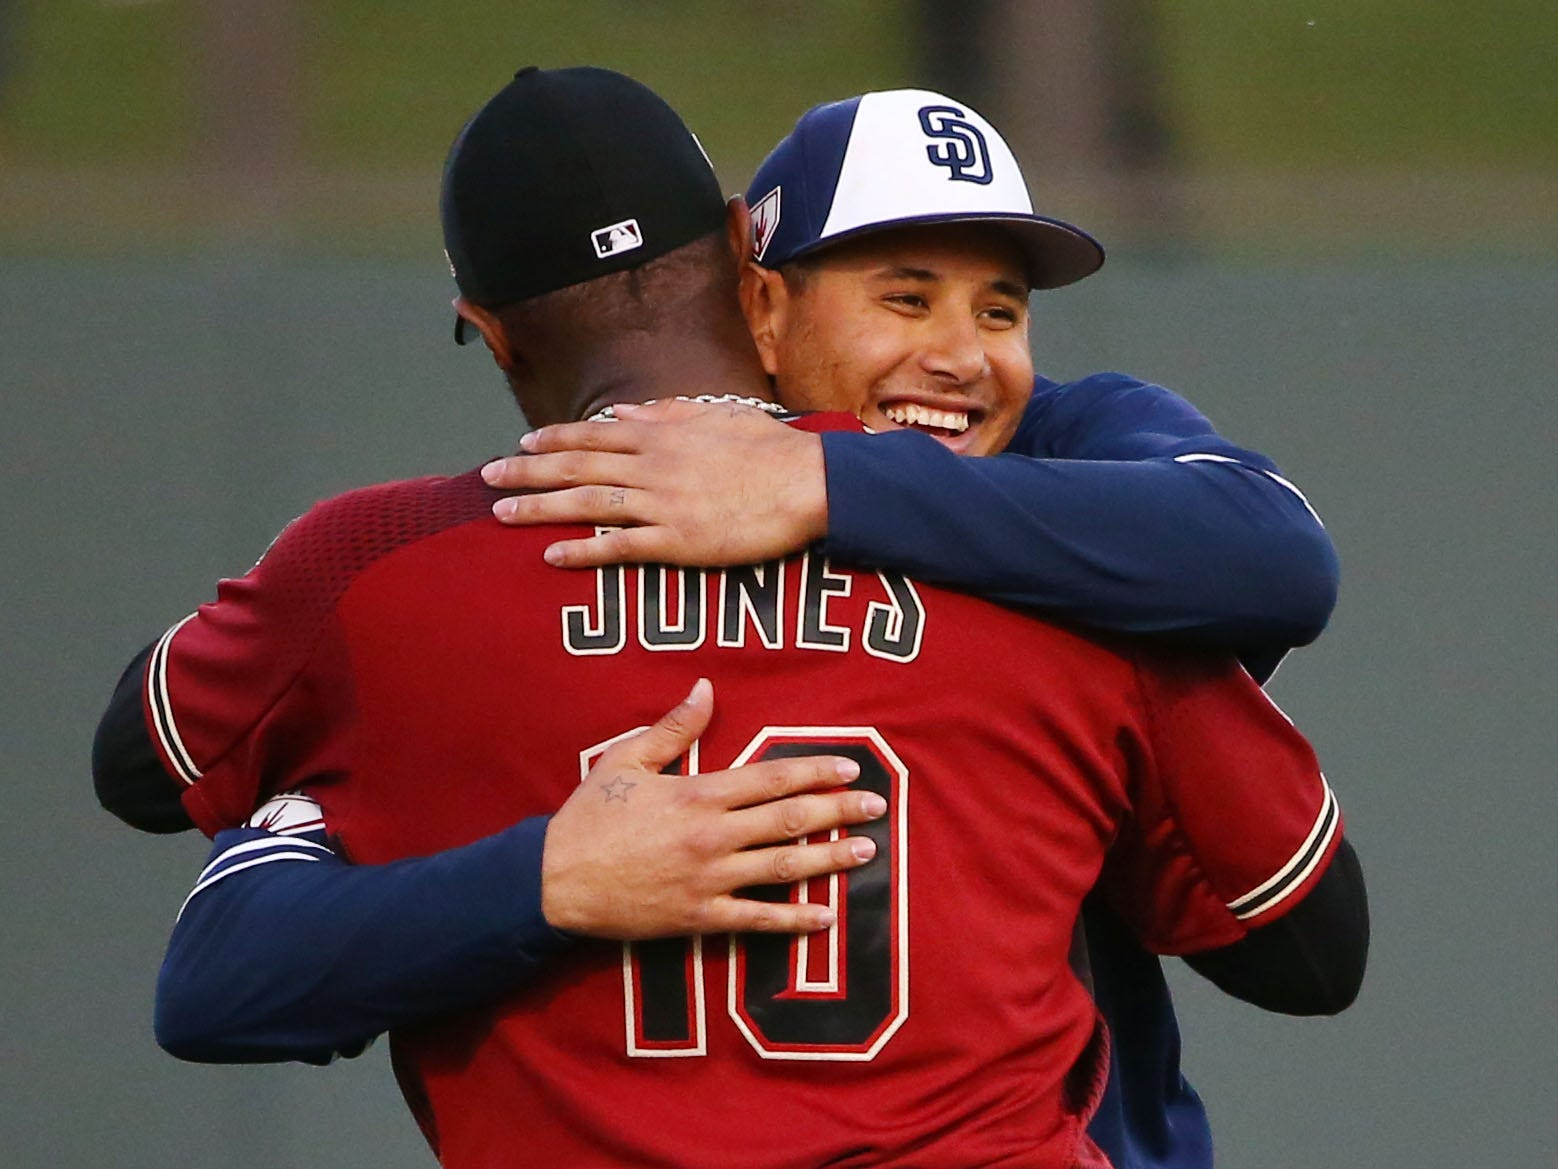 Arizona Diamondbacks Adam Jones (10) hugs San Diego Padres Manny Machado during a spring training game on Mar. 19, 2019 at Salt River Fields in Scottsdale, Ariz.